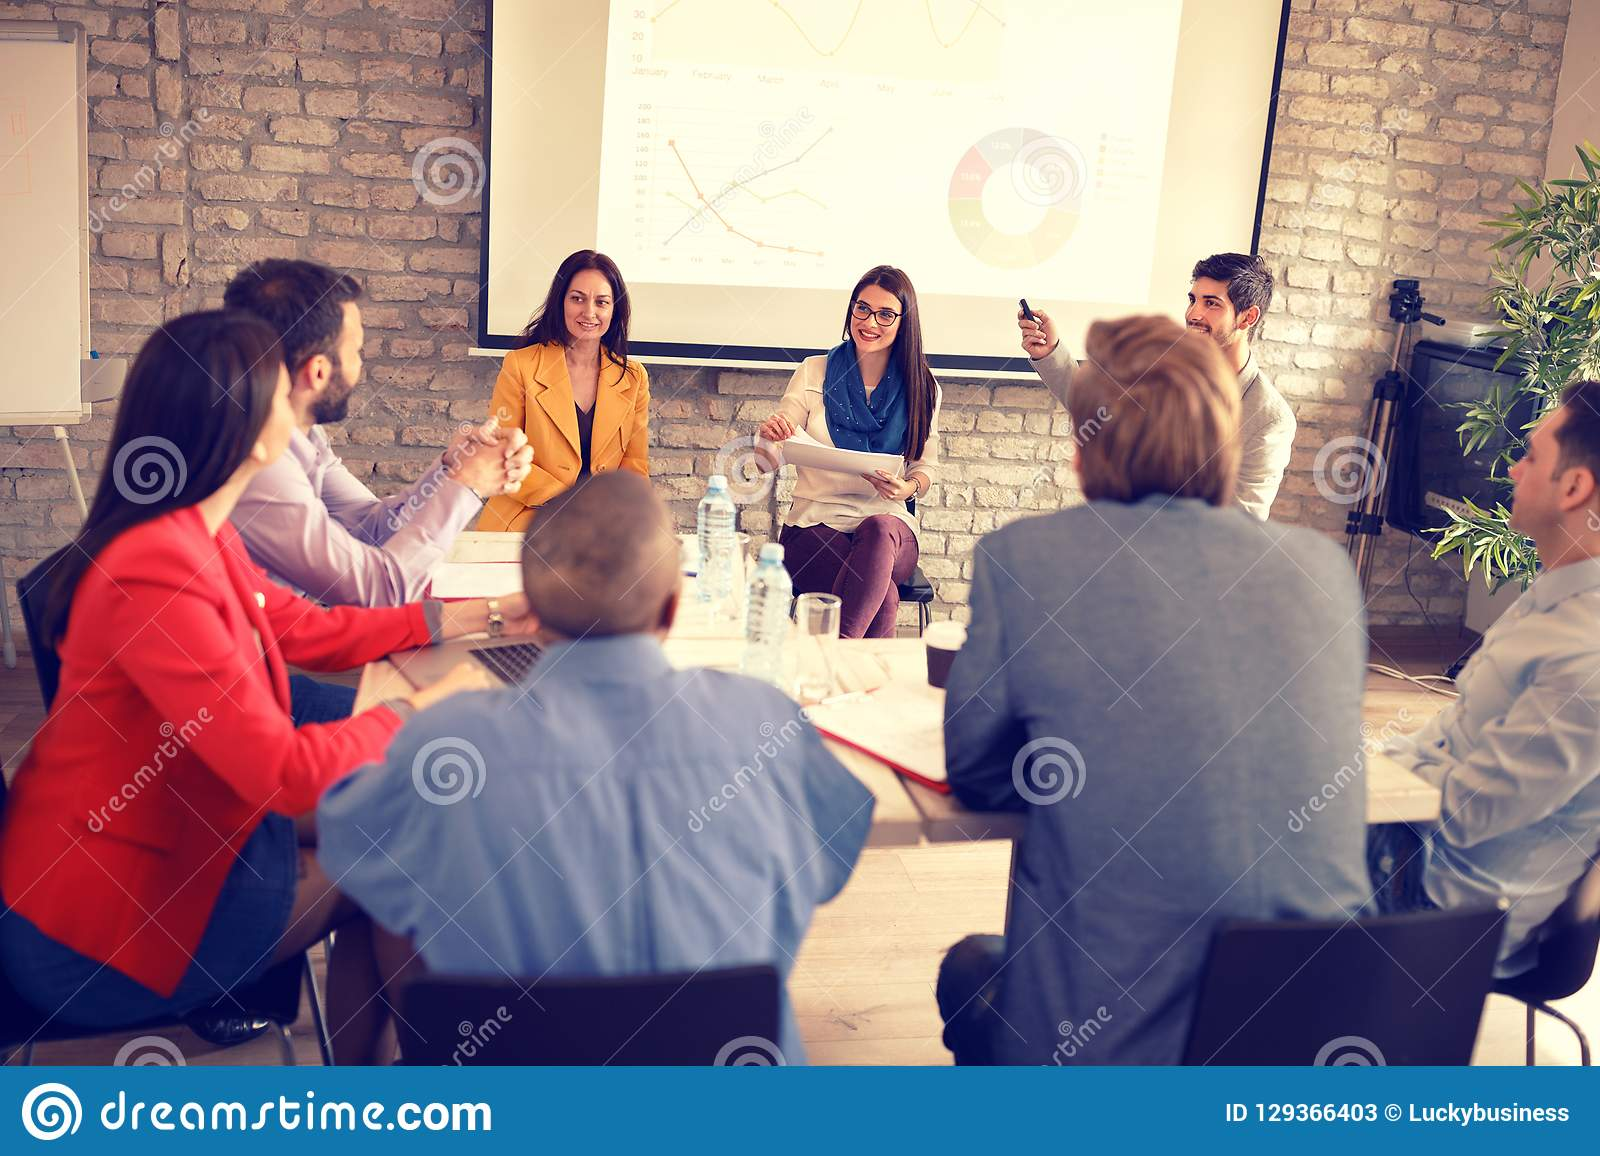 Businesspeople have business meeting in company